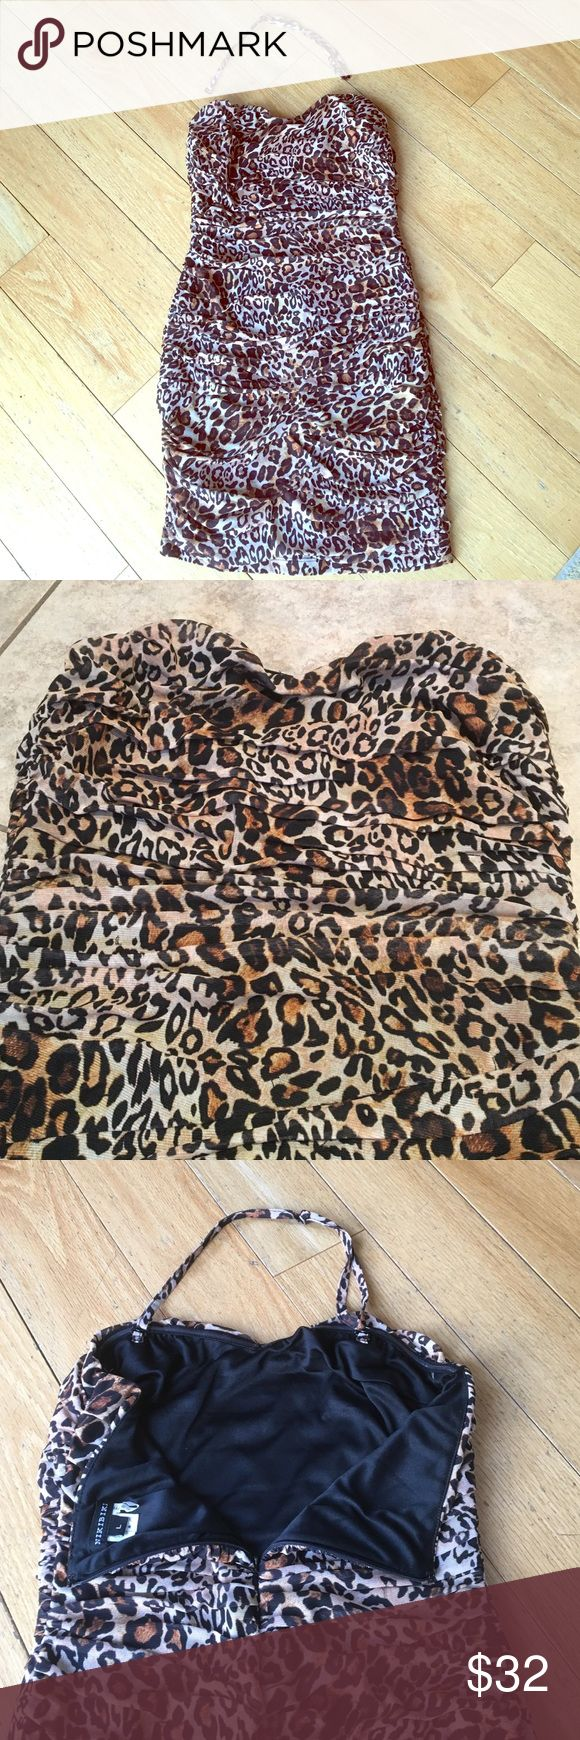 💥LIKE NEW SEXY STRAPLESS ANIMAL PRINT MINI DRESS 🔥Very Sexy Strapless Leopard/Animal Print Short Mini Dress With Sweetheart Top. Comes with removable halter strap if you need more support. Zip-up back. 90% polyester, 10% spandex, size large. SO SOFT & COMFY, you won't want to take this off! Worn Once, Like New!!! Smoke/pet free environment. Dresses Strapless